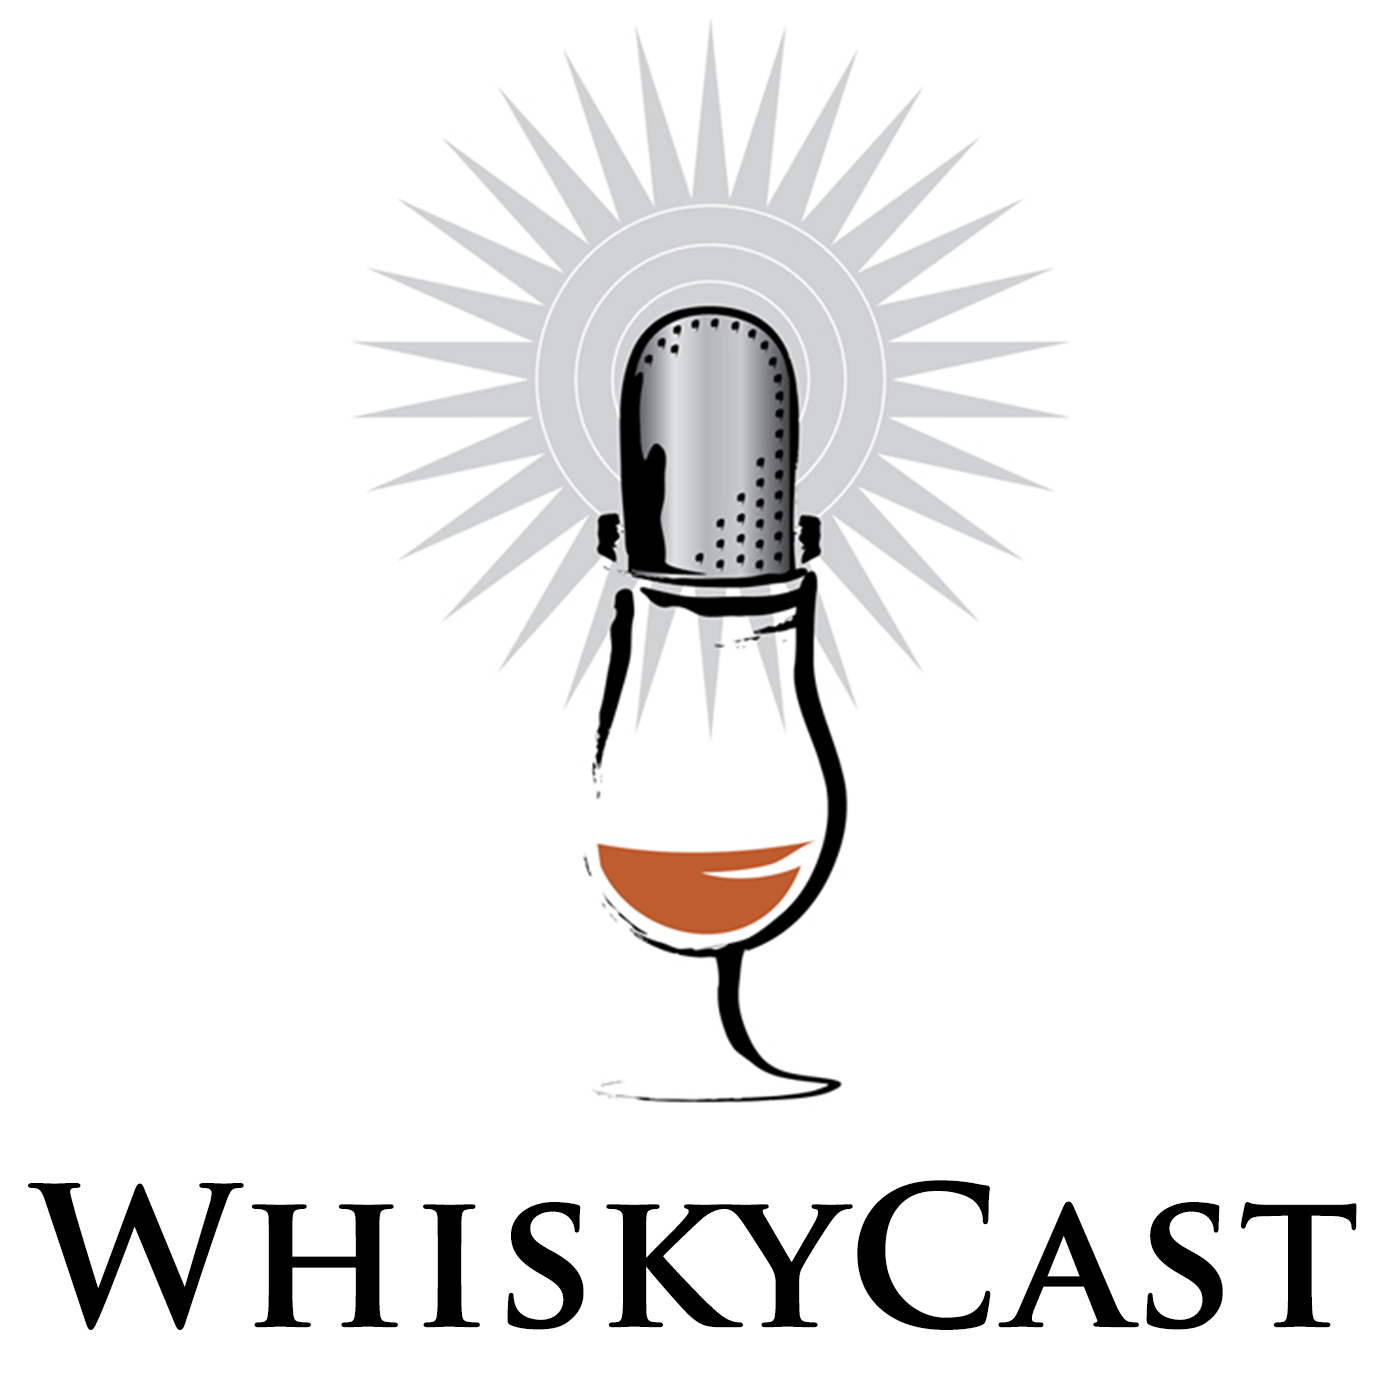 WhiskyCast Episode 428: June 8, 2013